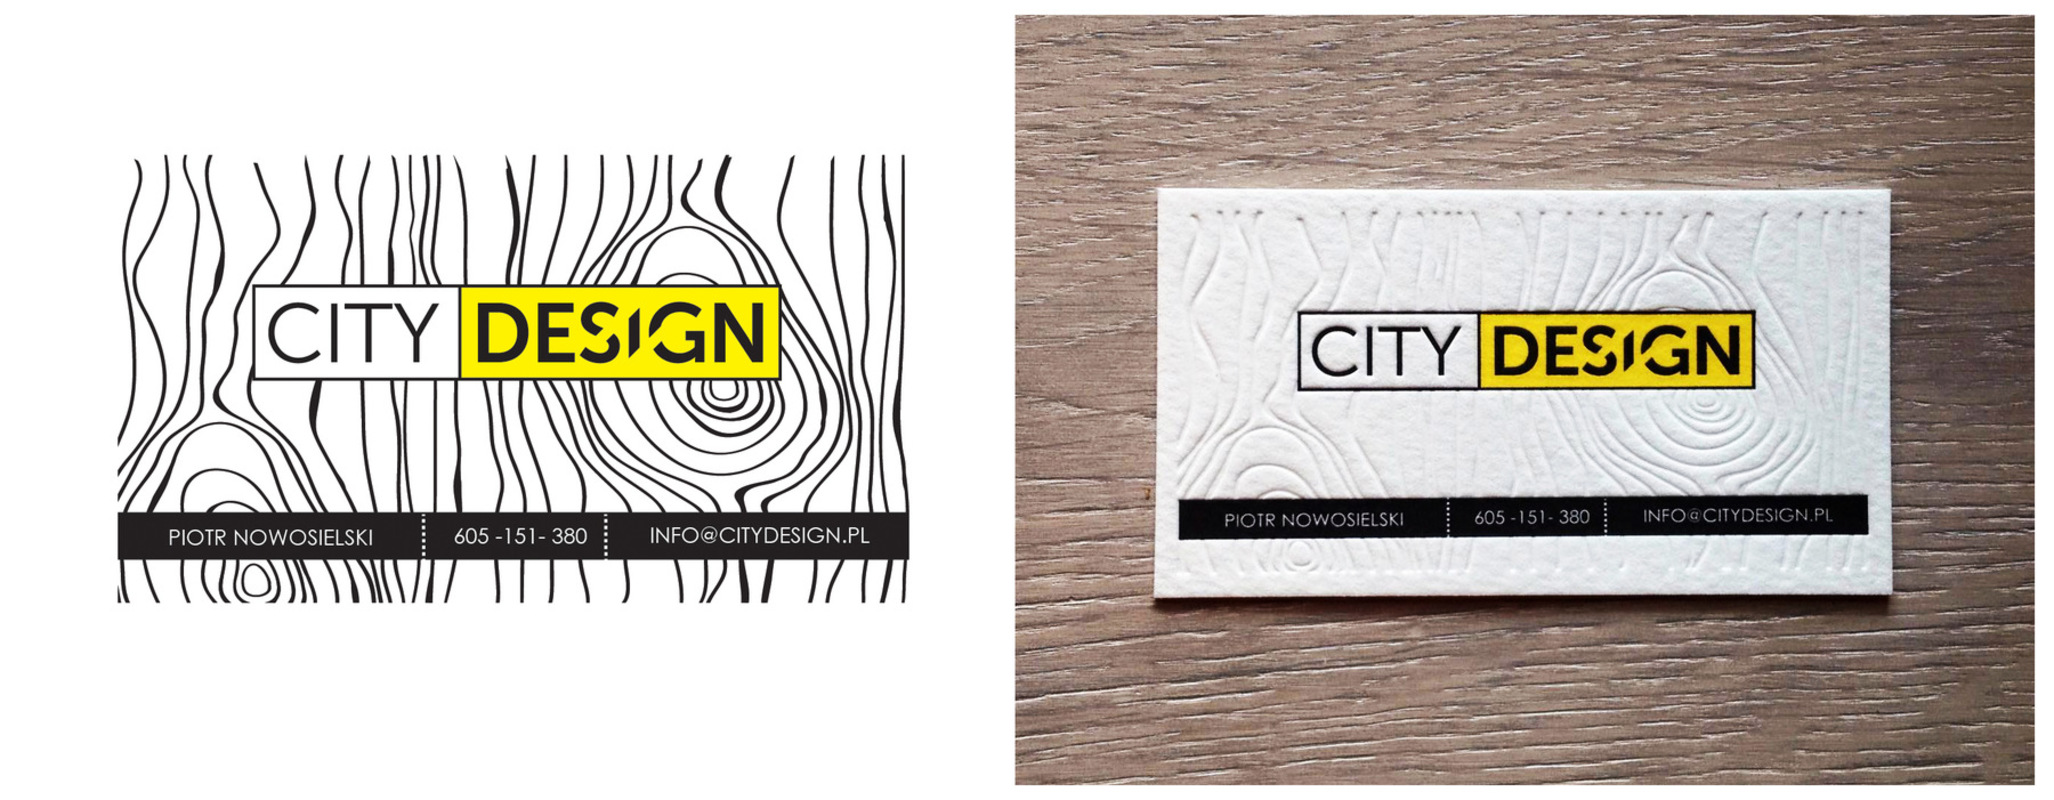 4thdimensionofcreativity - City Design Buisness Card